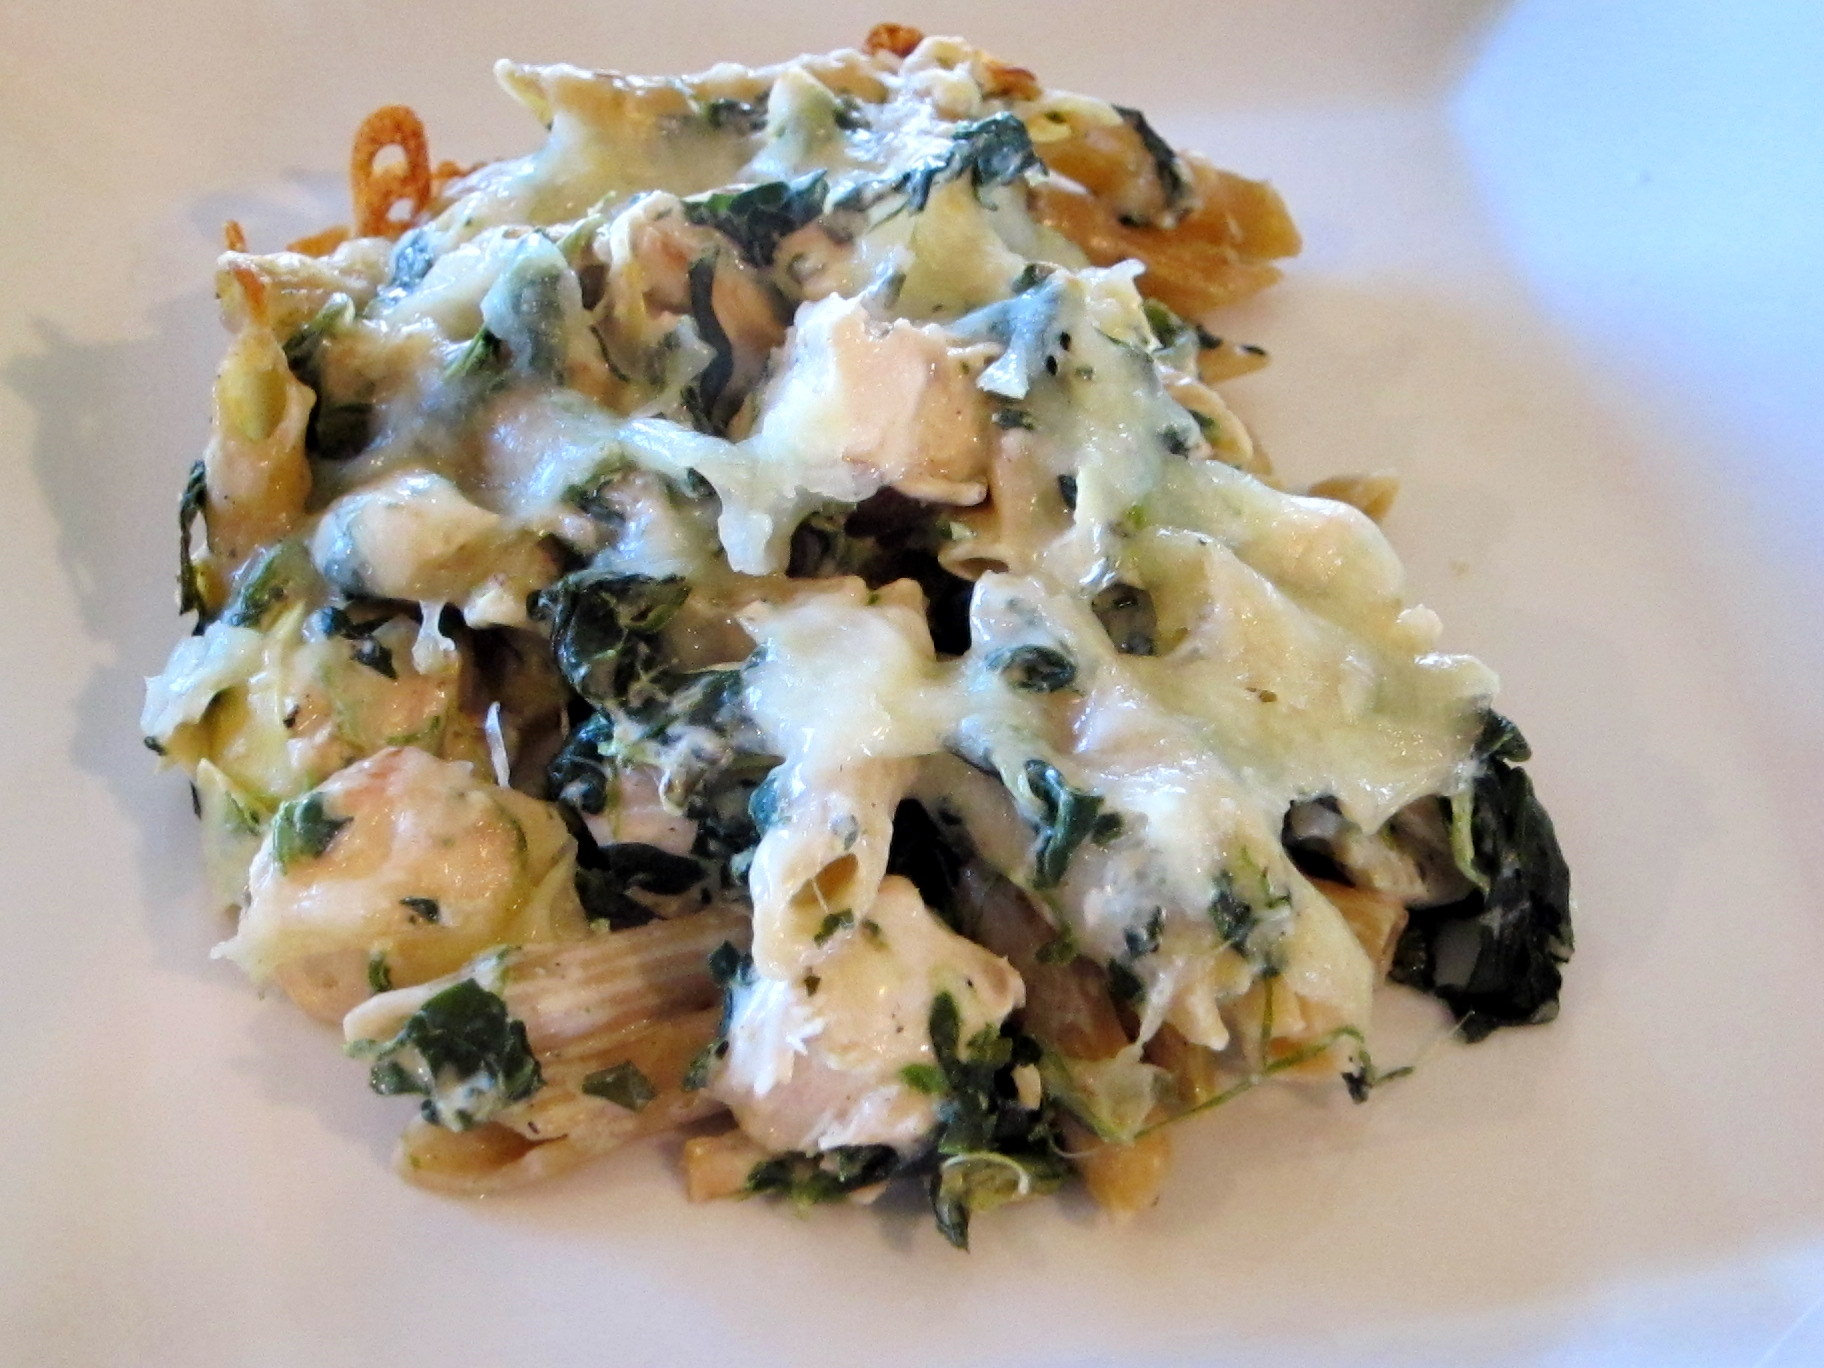 Chicken, Spinach and Artichoke Pasta Bake